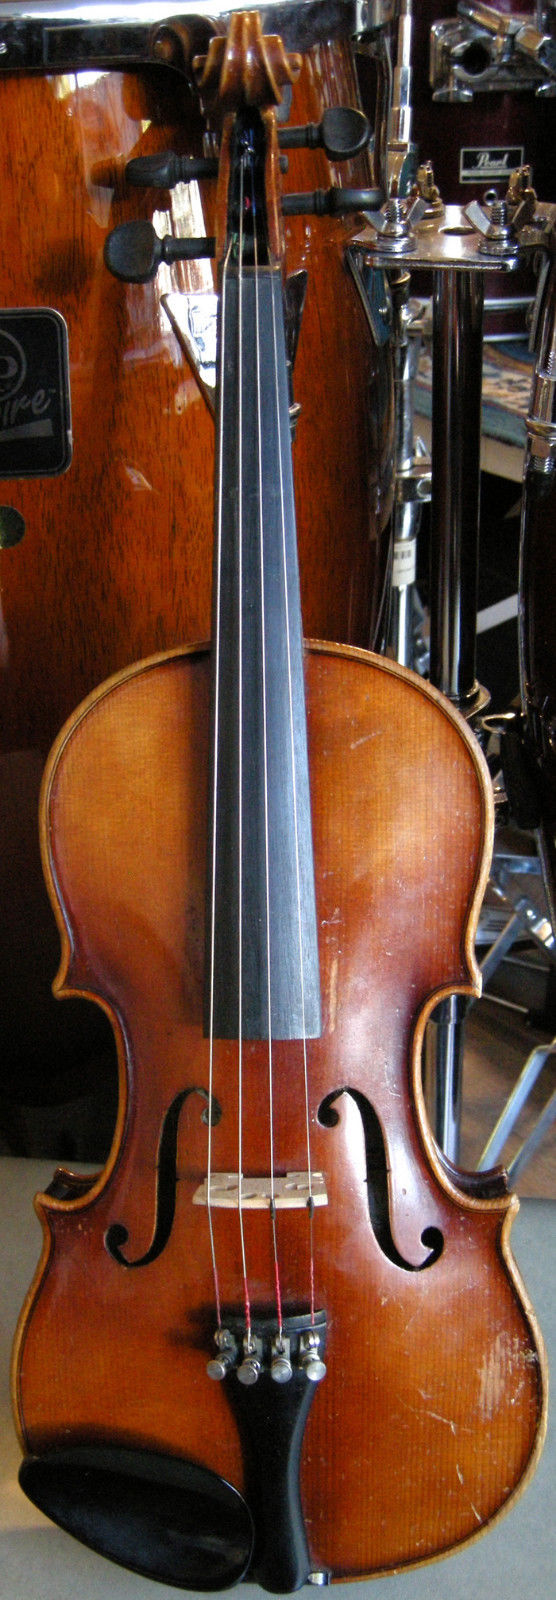 1966 E.R. Pfretzschner Model 3011 Intermediate Violin--Bow and Case Not Included